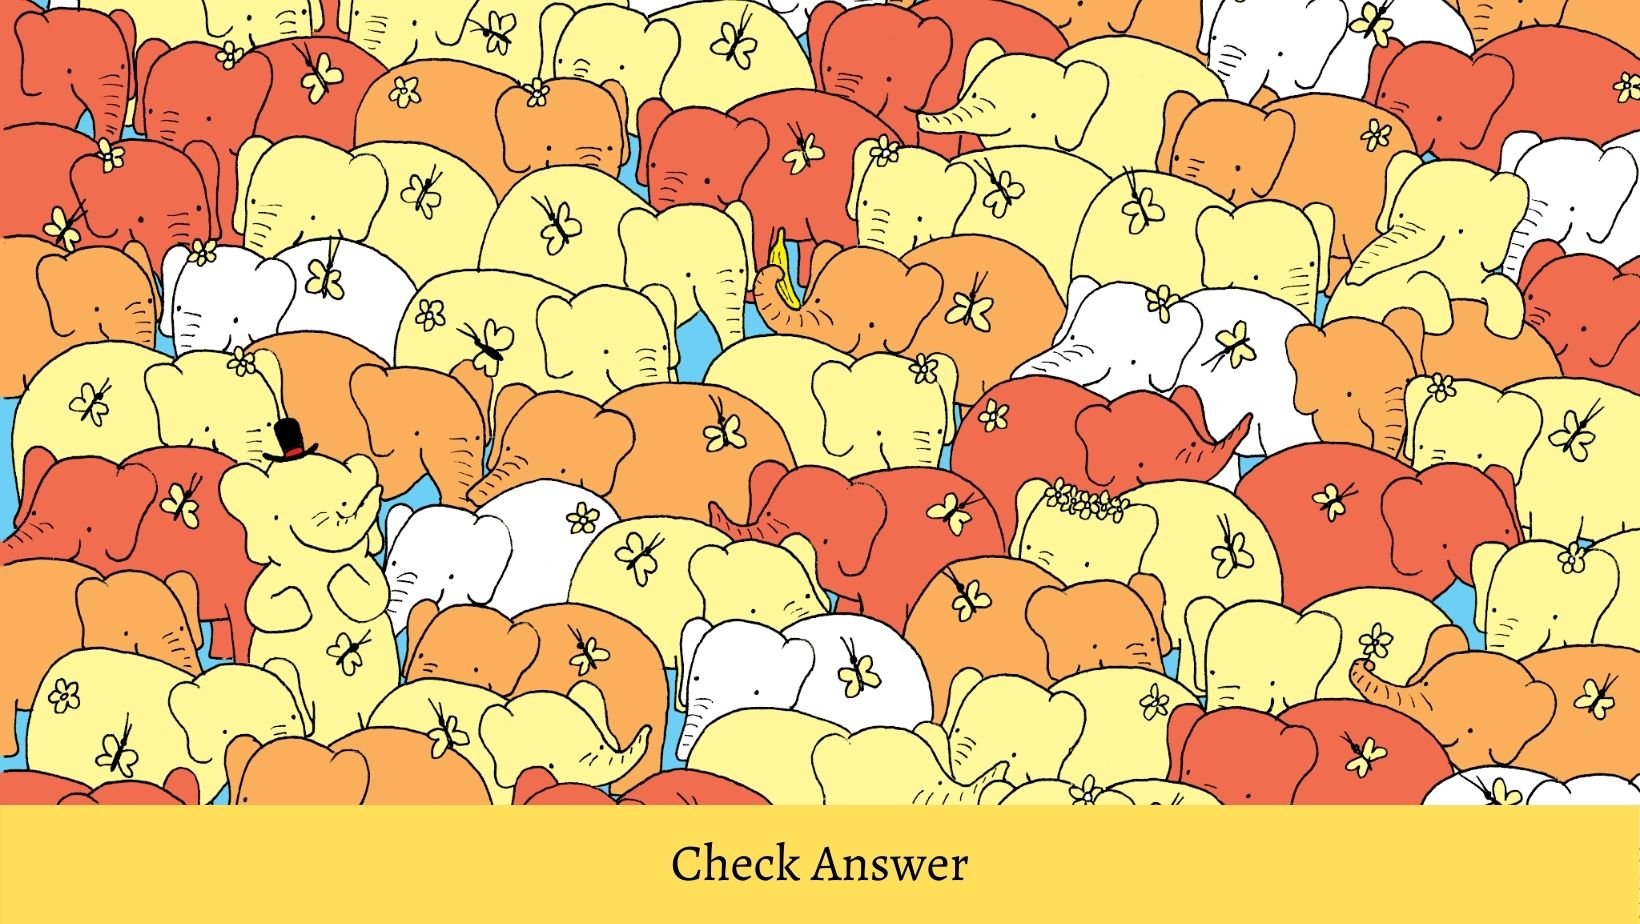 small joys thumbnail 19.jpg?resize=1200,630 - There's A Tiny HEART In This Herd Of Elephants, Can You Spot It?